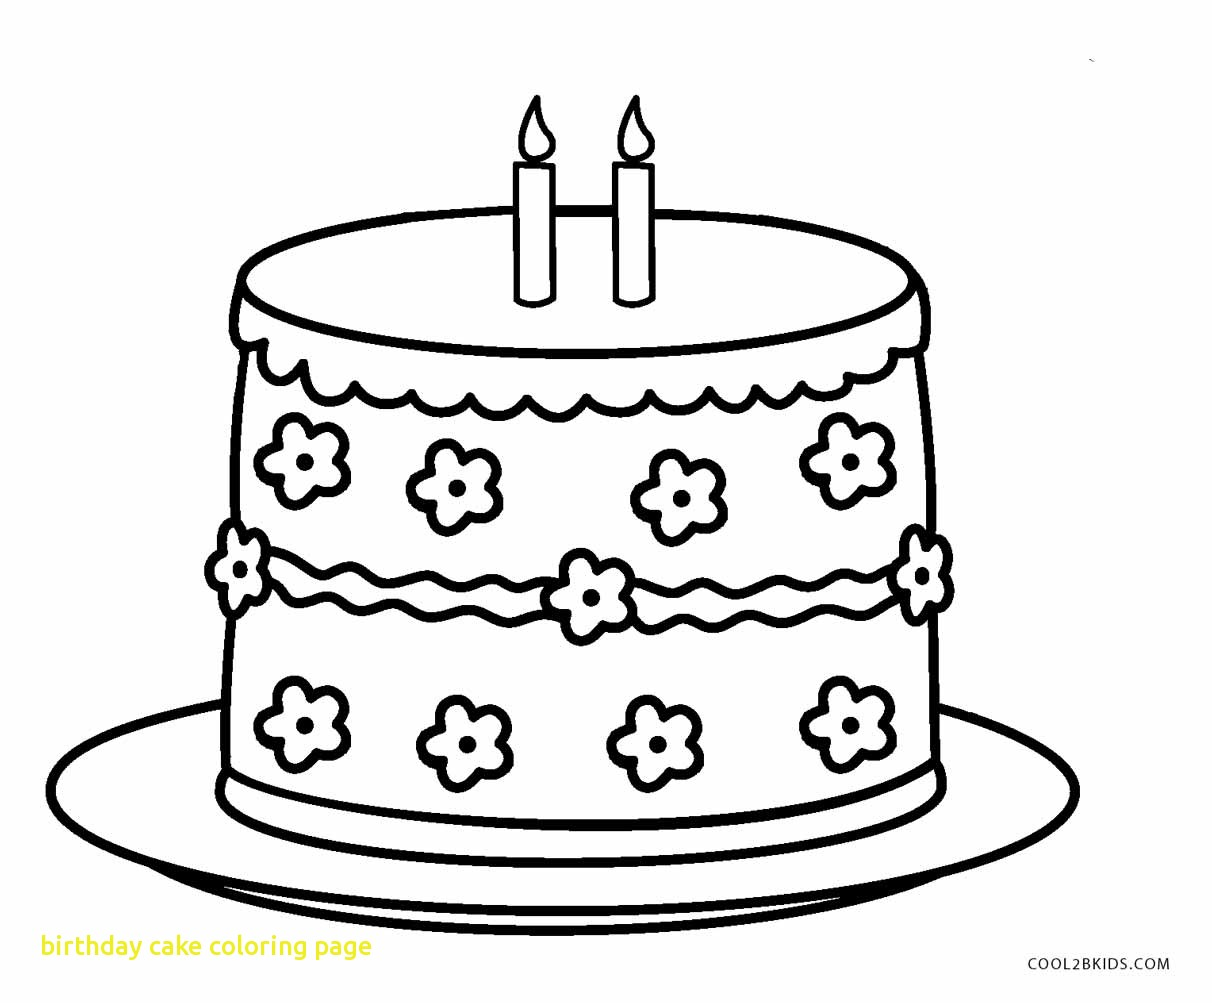 Birthday Cake Drawing Step By Step At Getdrawings